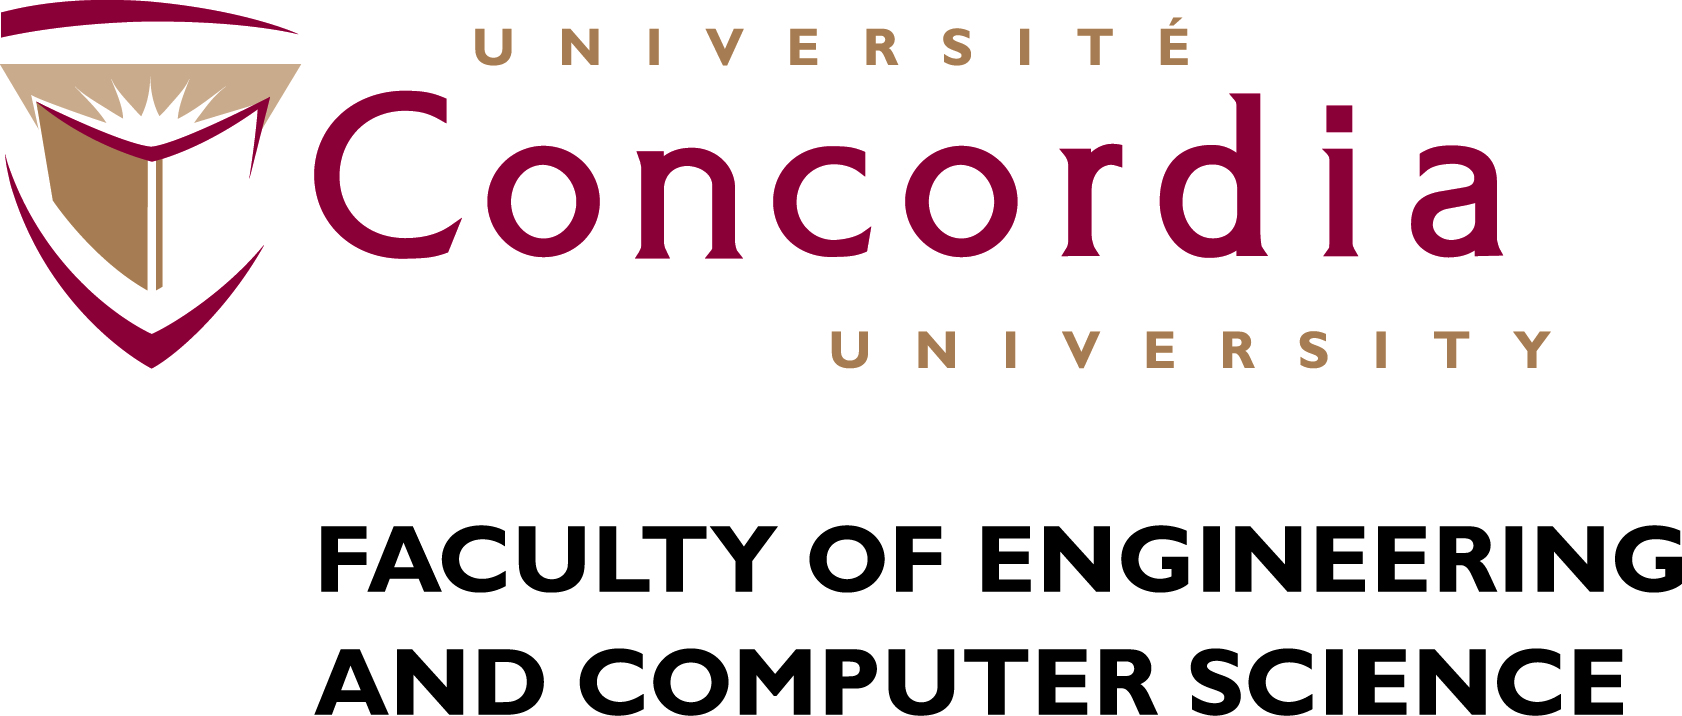 Concordia University Faculty of Engineering and Computer Science